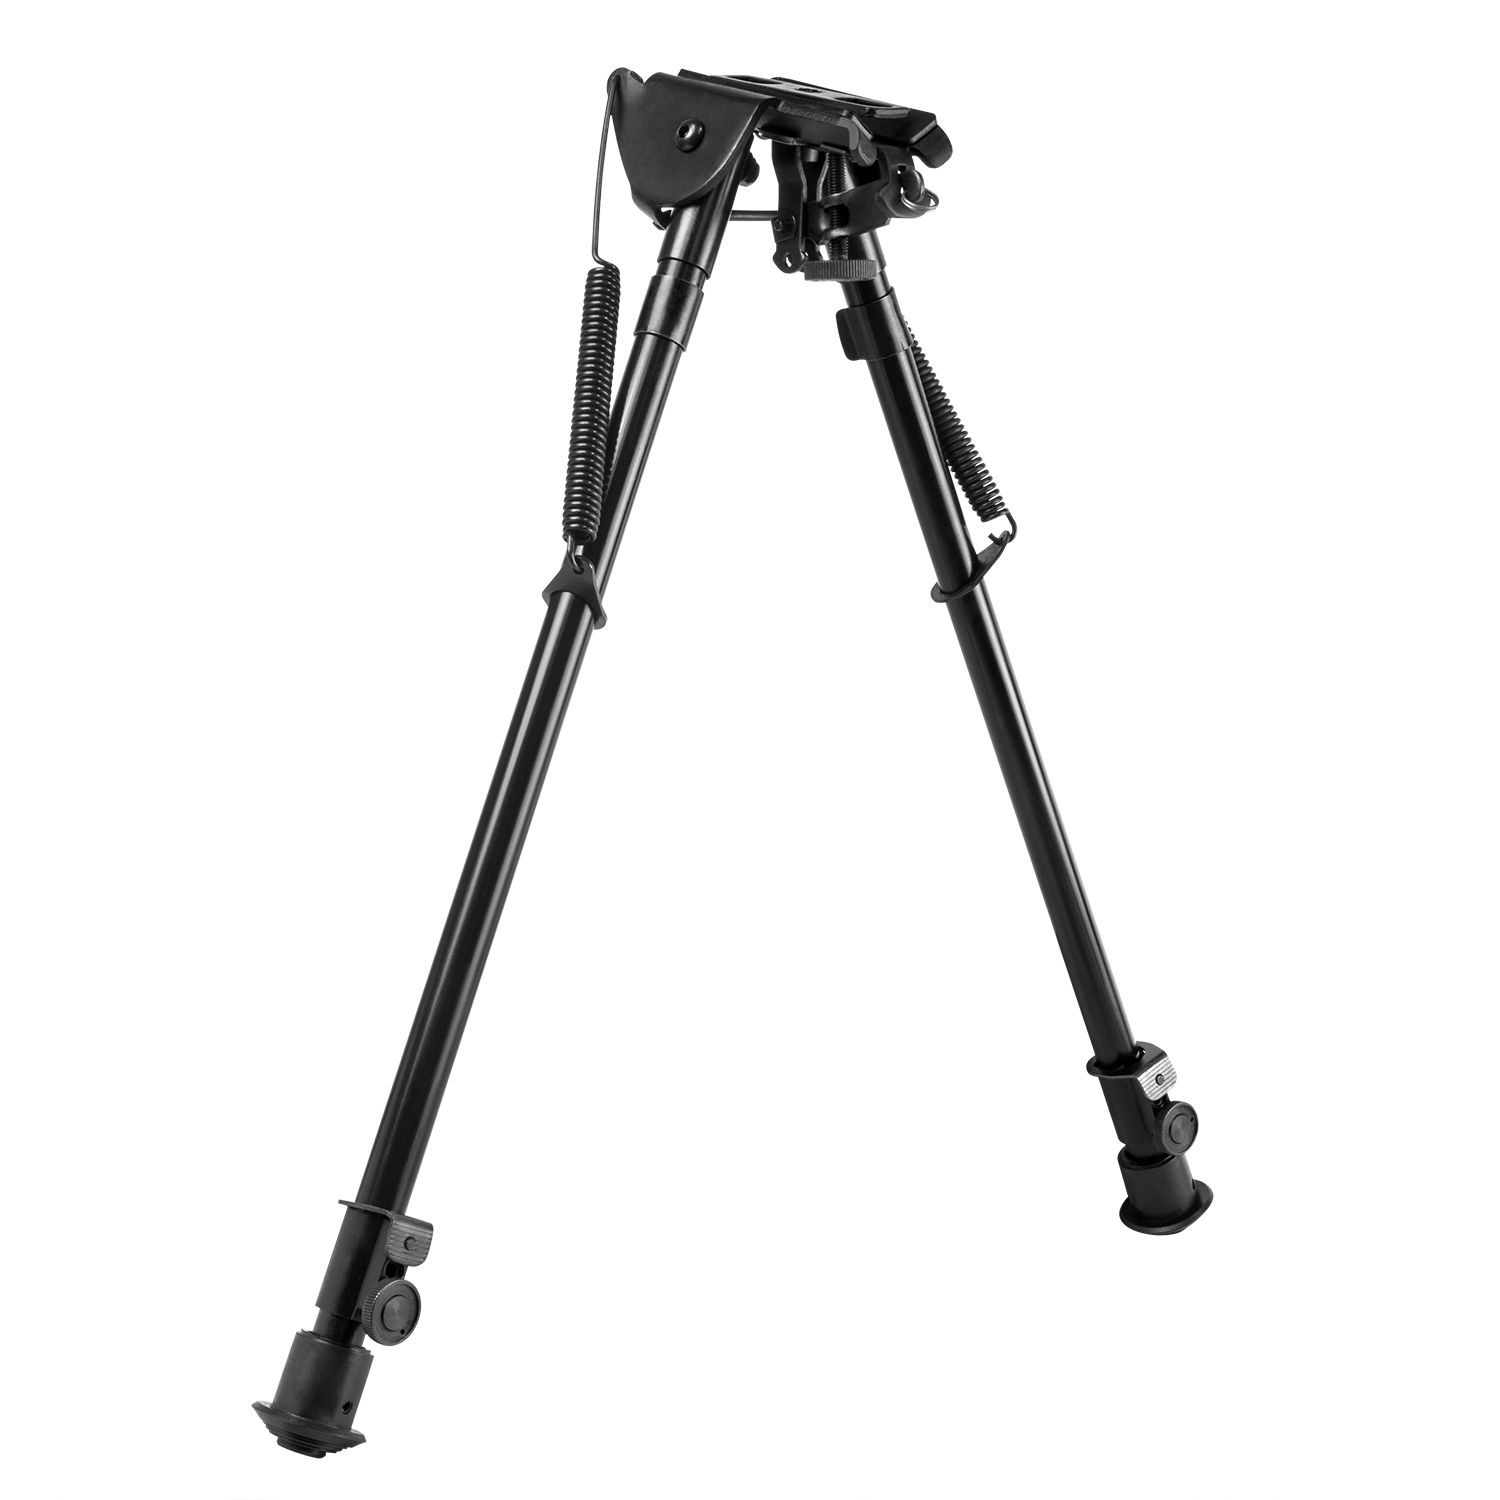 Ncstar Precision Grade Tall Bipod With 3 Adapters